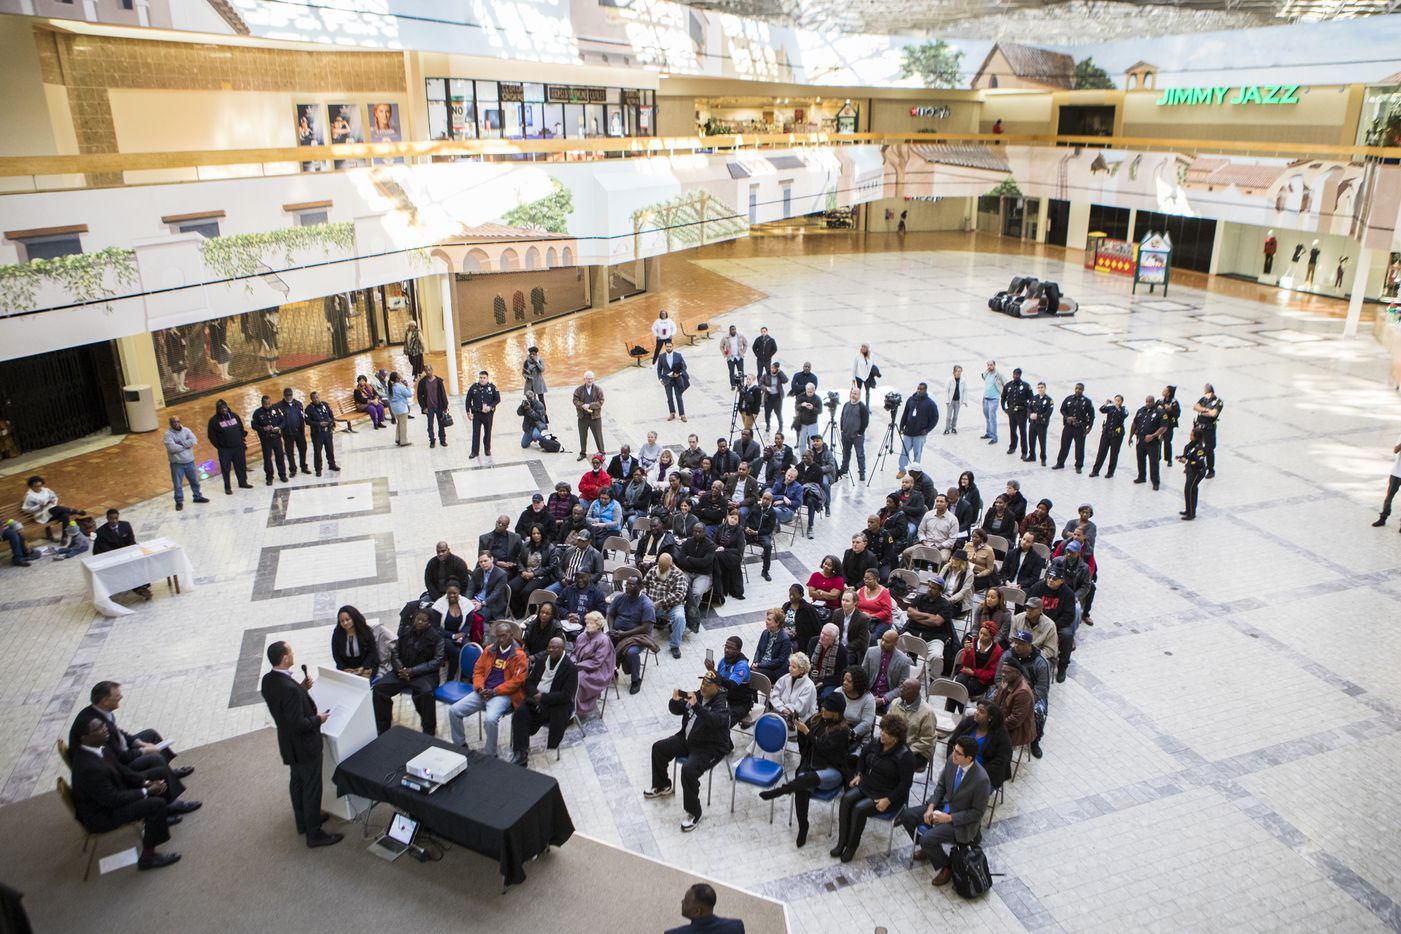 Community members gathered to see the future of the mall formally known as Red Bird Mall on Jan. 7, 2017, at Southwest Center Mall in Dallas. Developers plan to update the architecture of the mall while saving the atrium and arches outside of the closing Macy's department store.